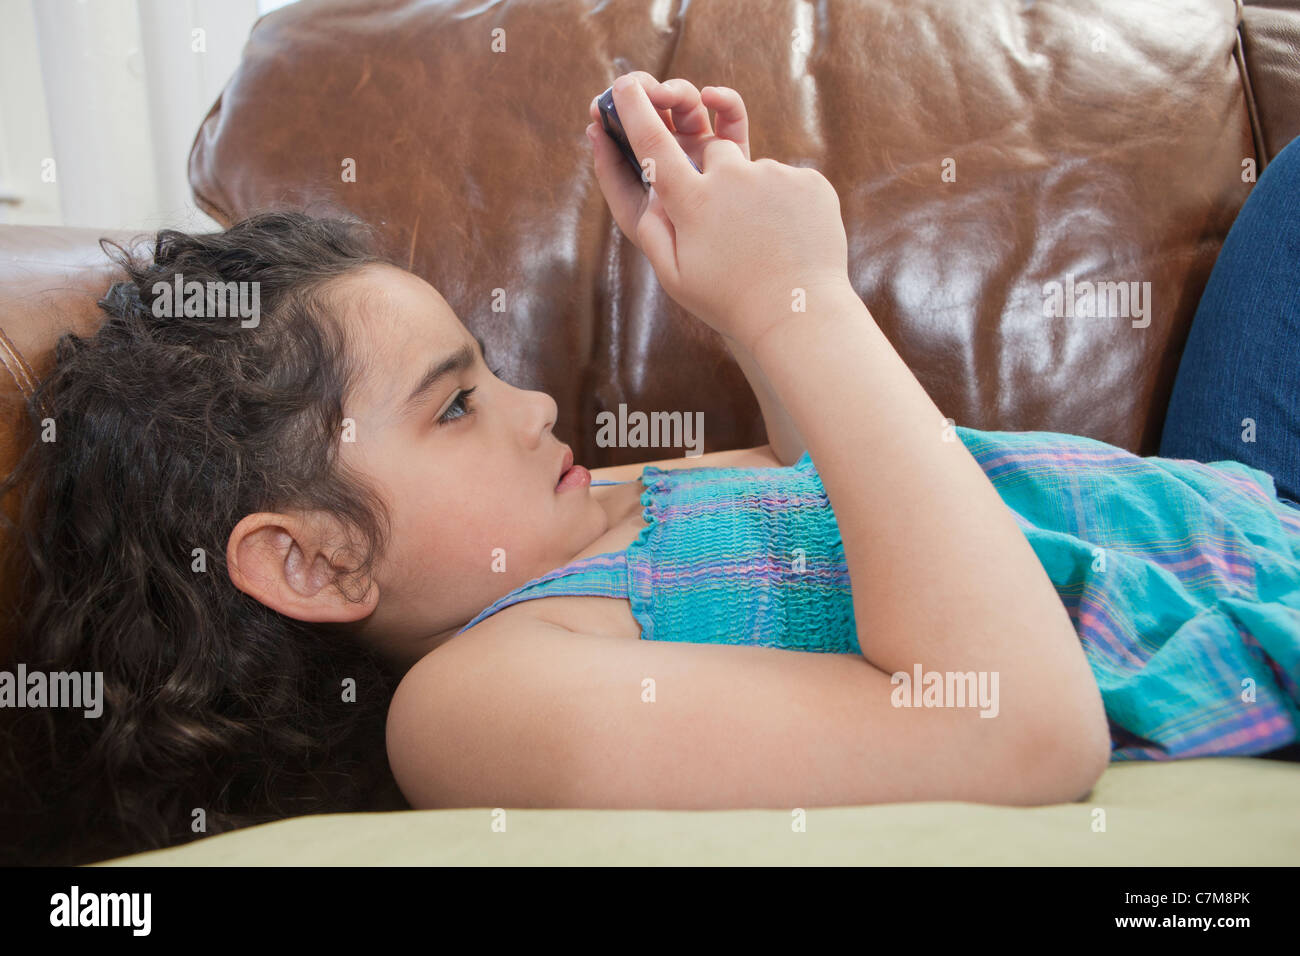 Hispanic girl lying on a couch and looking at a text message on a mobile phone - Stock Image